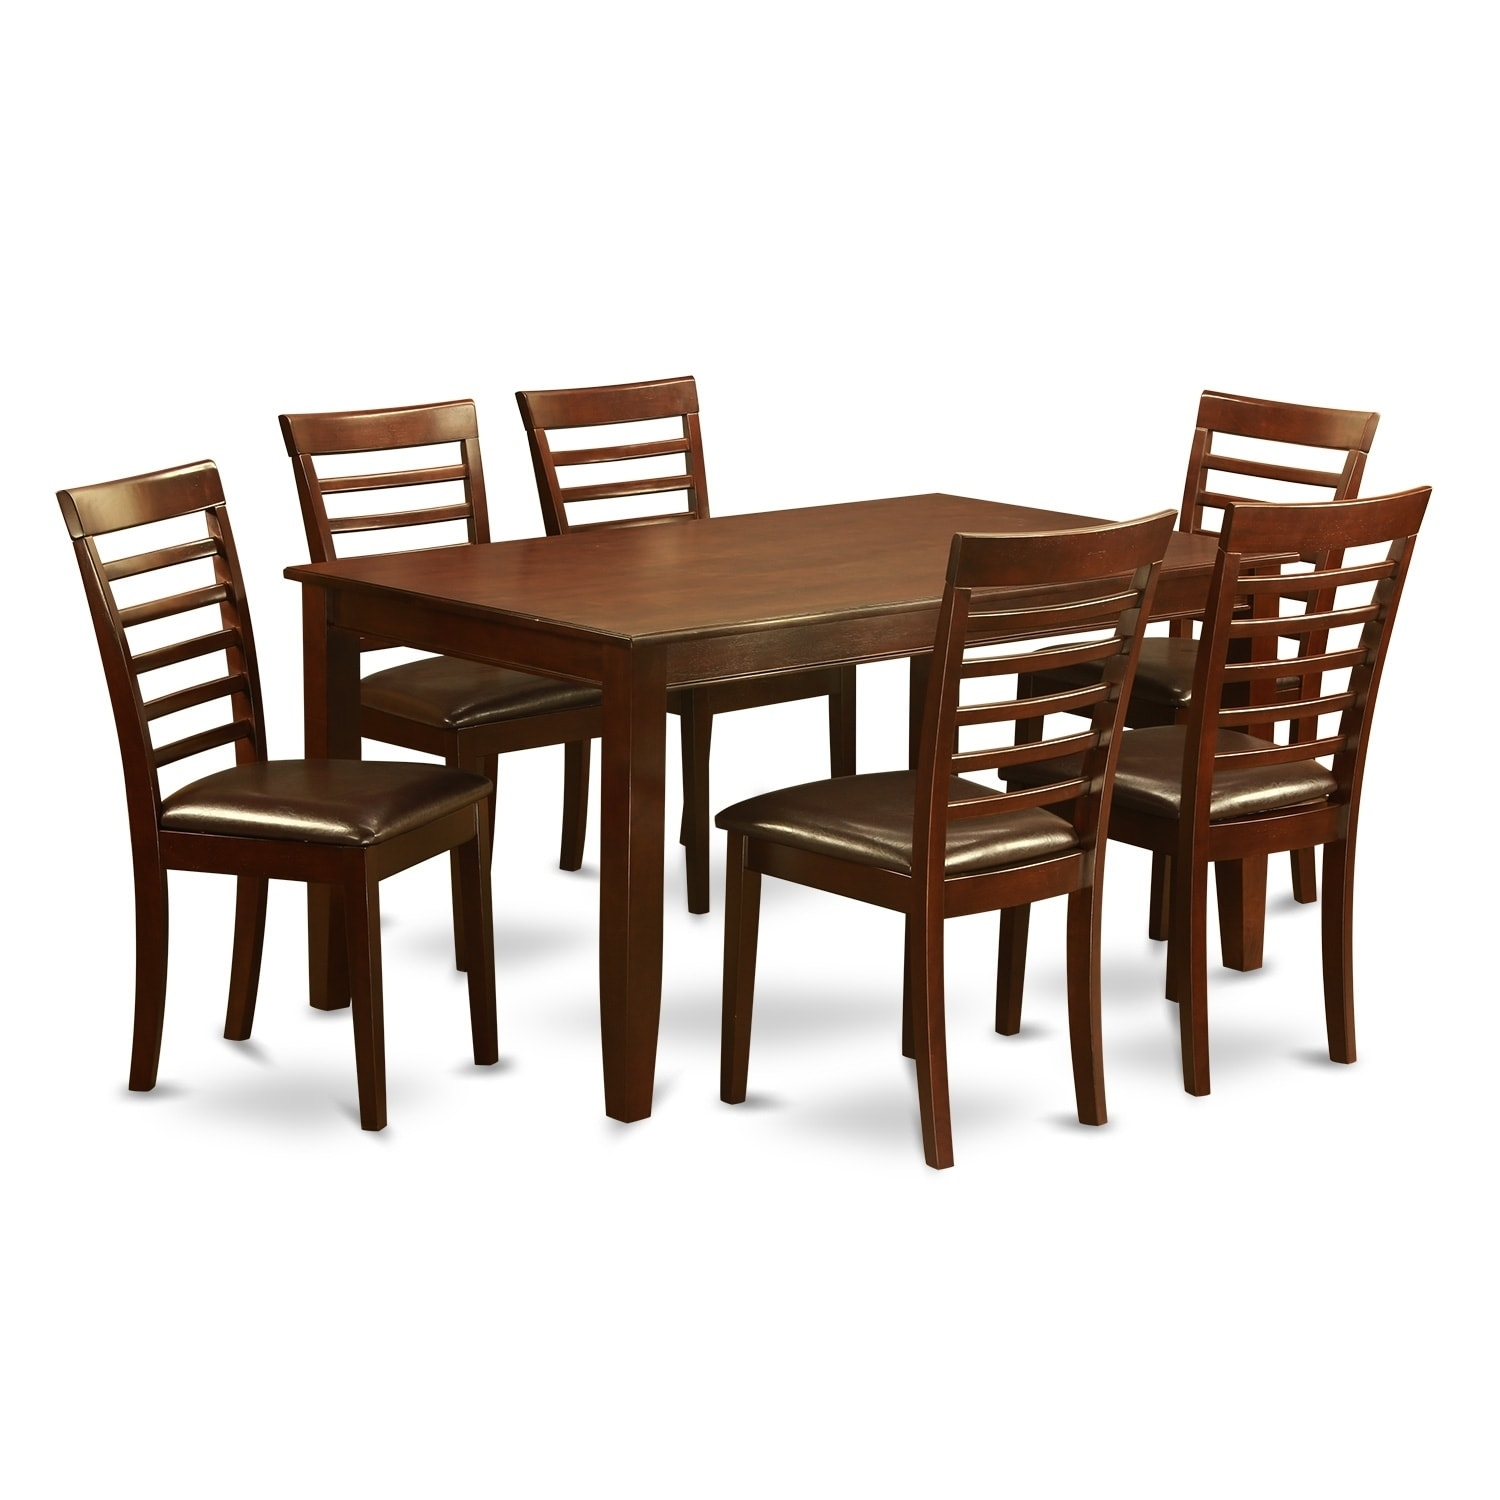 DUML7-MAH 7 PC Dining room set-Dining Table with 6 matchi...